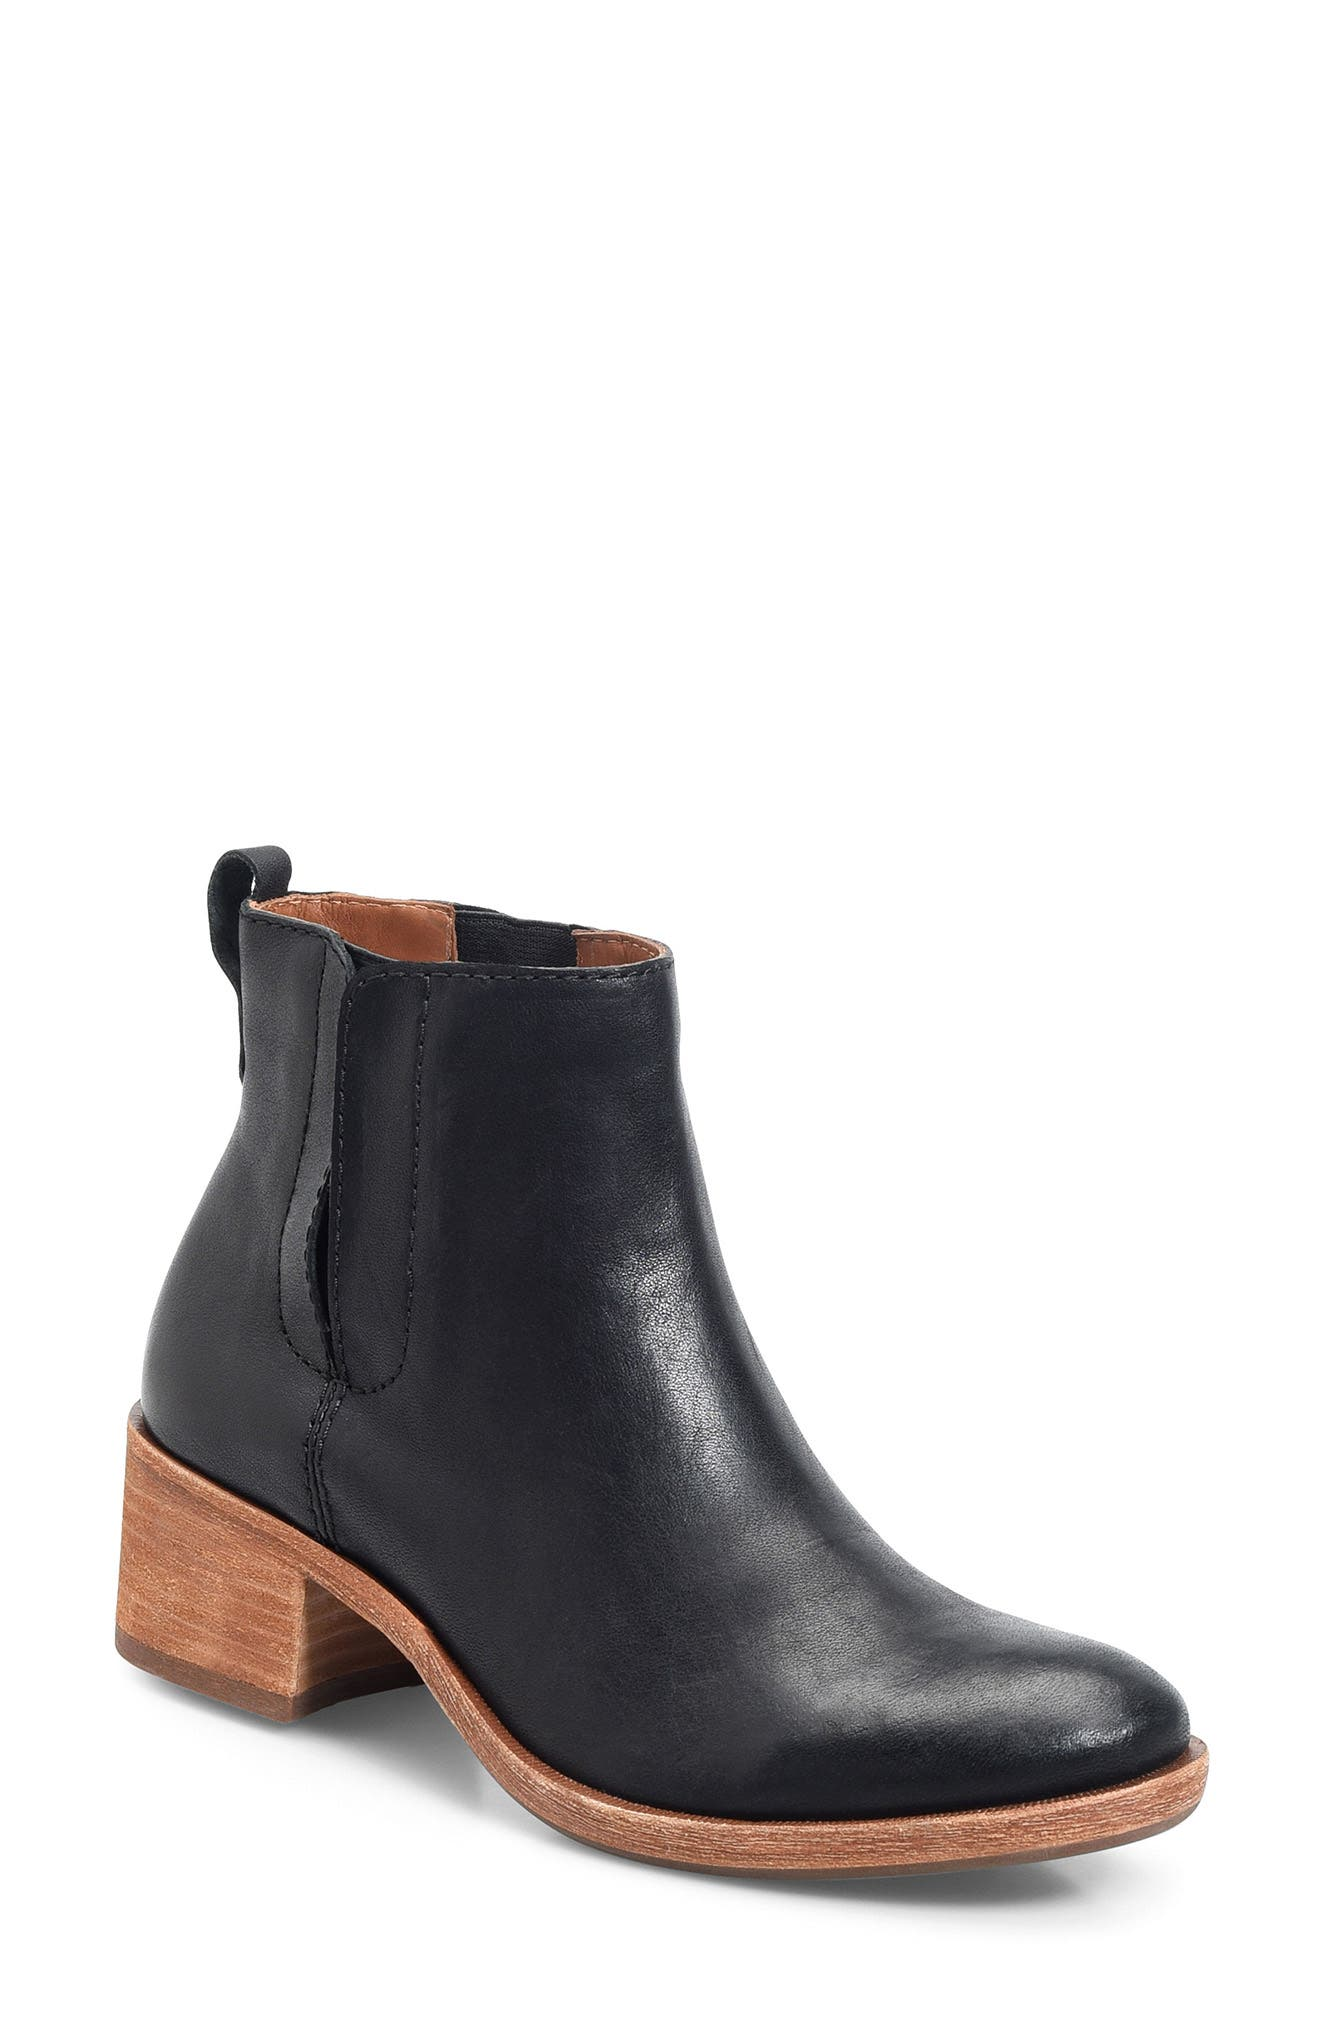 Mindo Chelsea Bootie,                             Main thumbnail 1, color,                             BLACK LEATHER